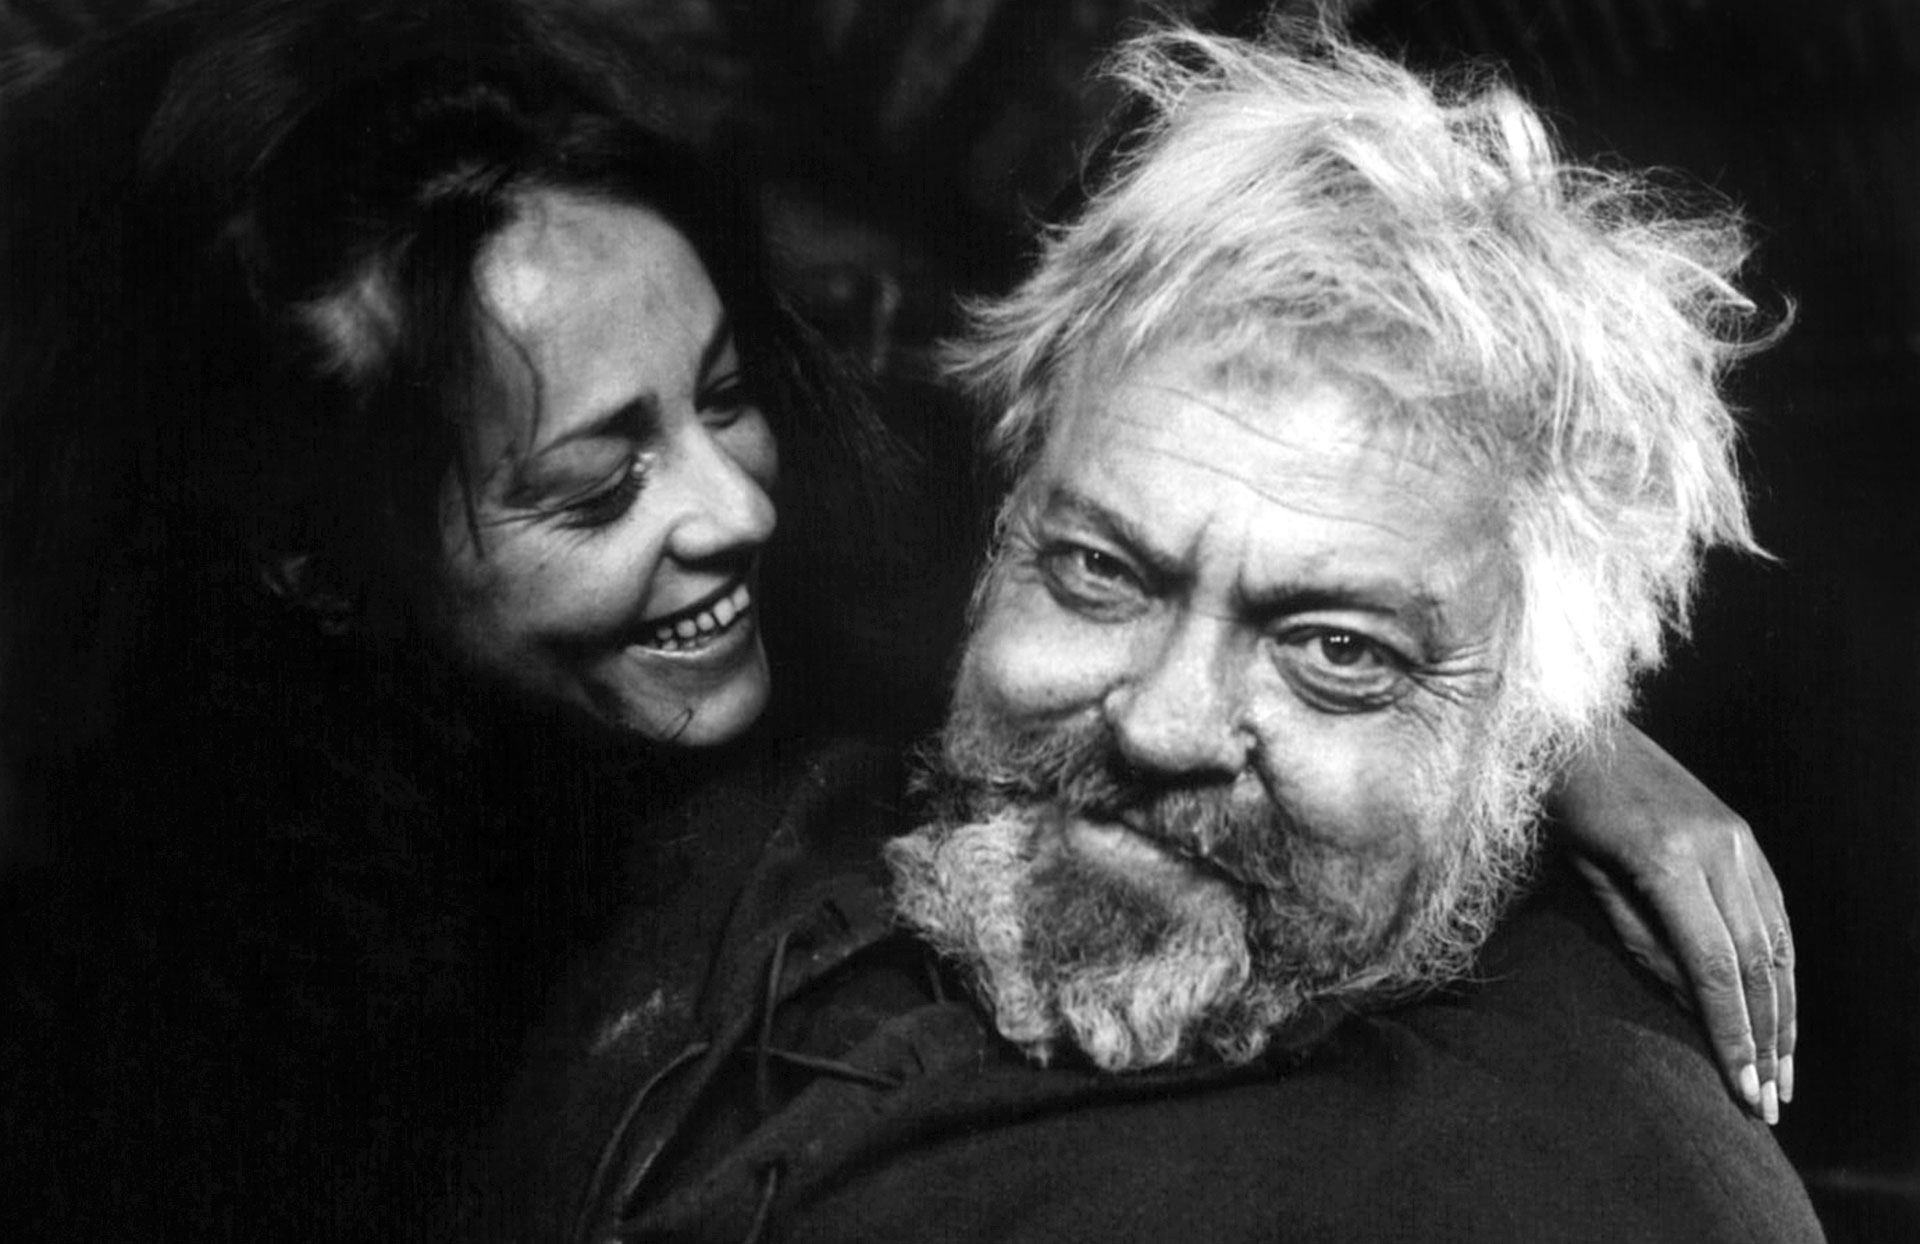 a critique and comprehensive movie analysis of chimes at midnight by orson welles